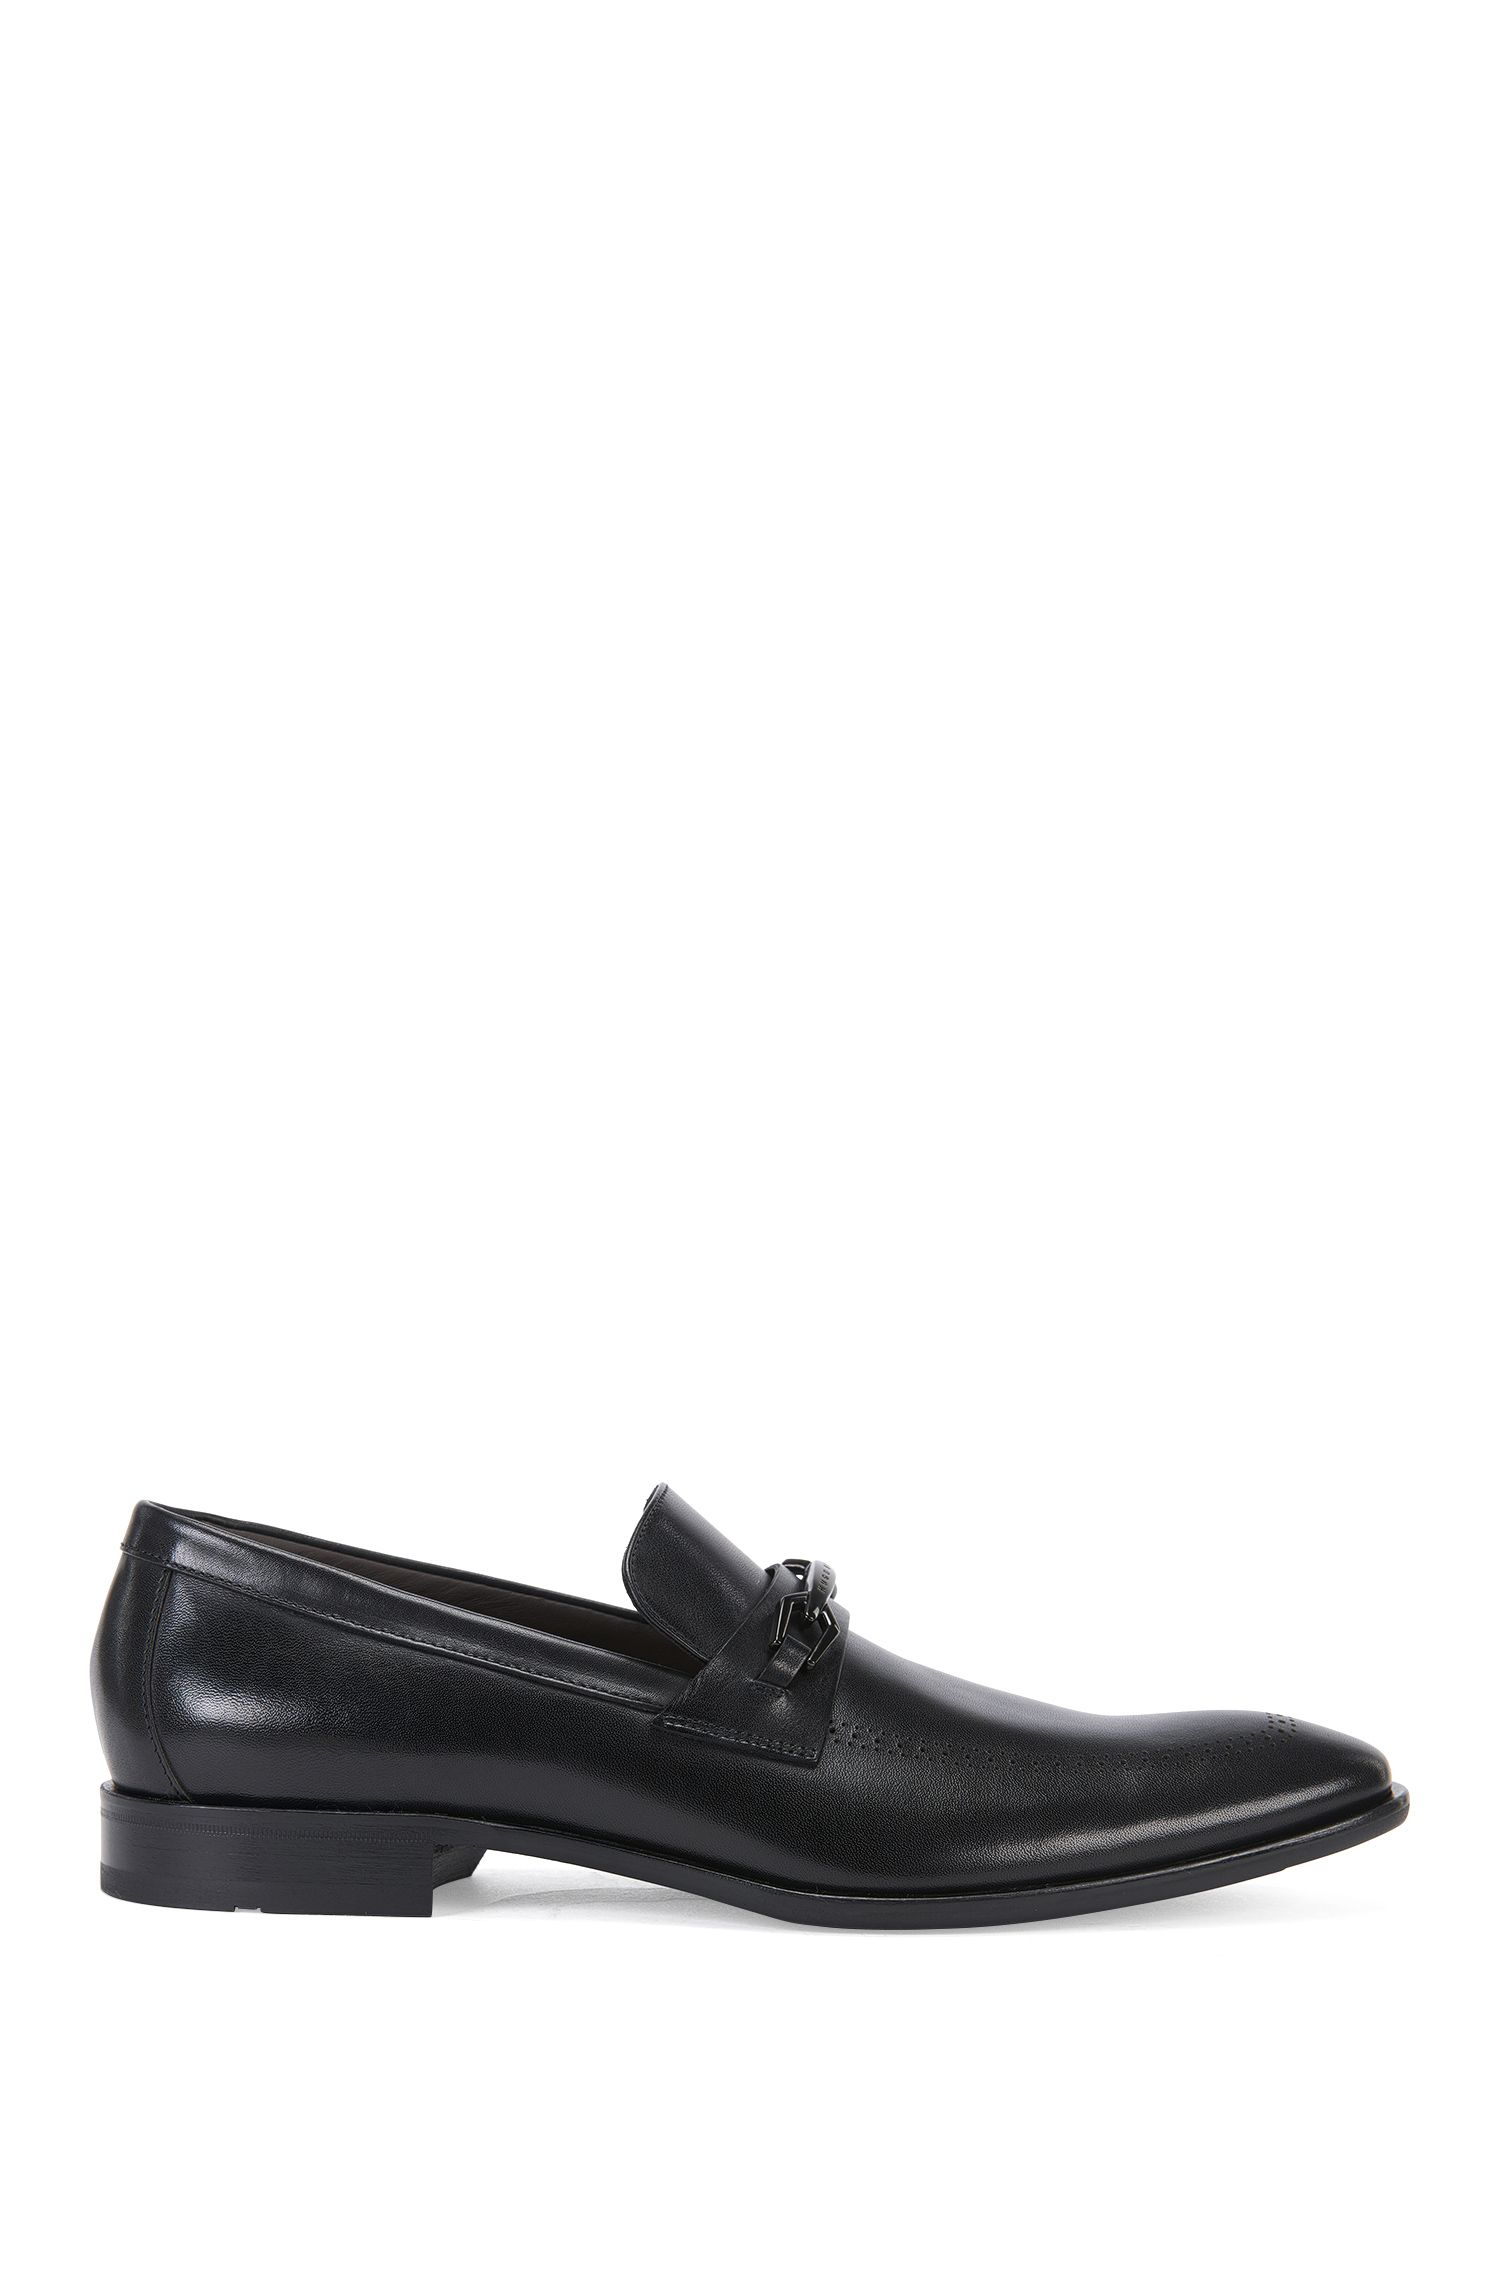 Italian Leather Horsebit Loafer Dress Shoe | Chelsea Loaf Apls